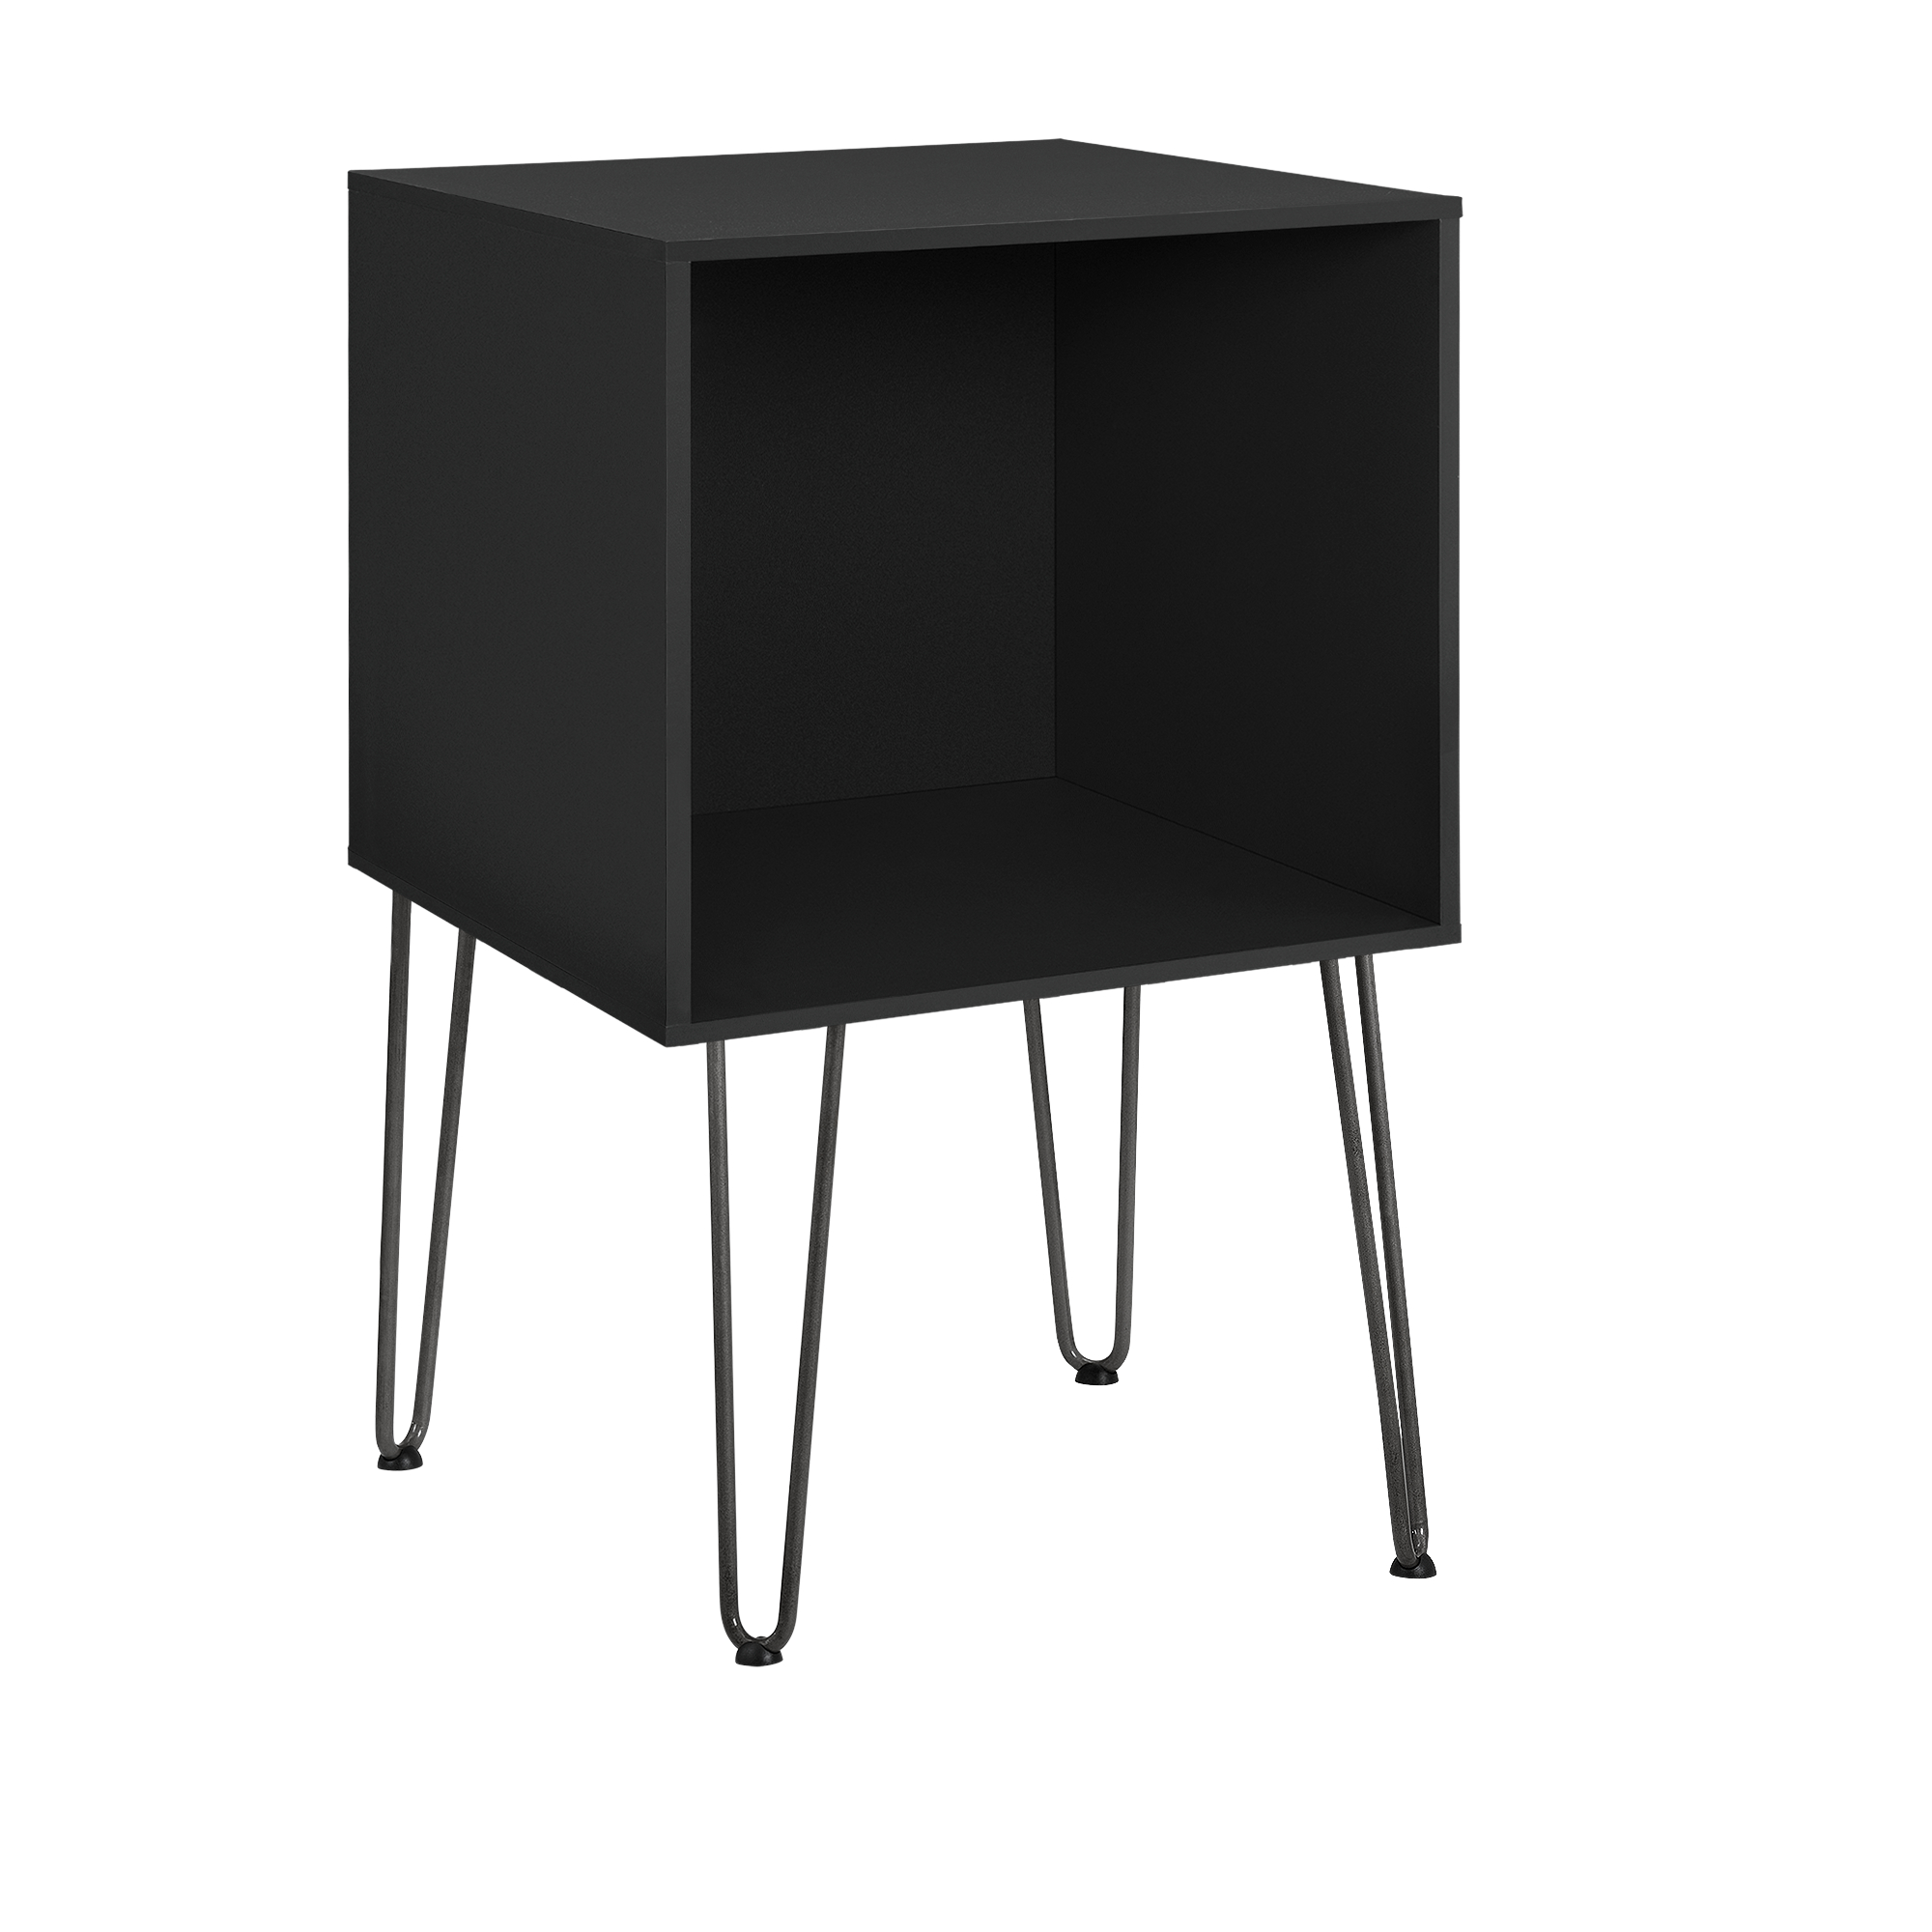 beistelltisch mit hairpin legs nachttisch wandkonsole regal schwarz ebay. Black Bedroom Furniture Sets. Home Design Ideas